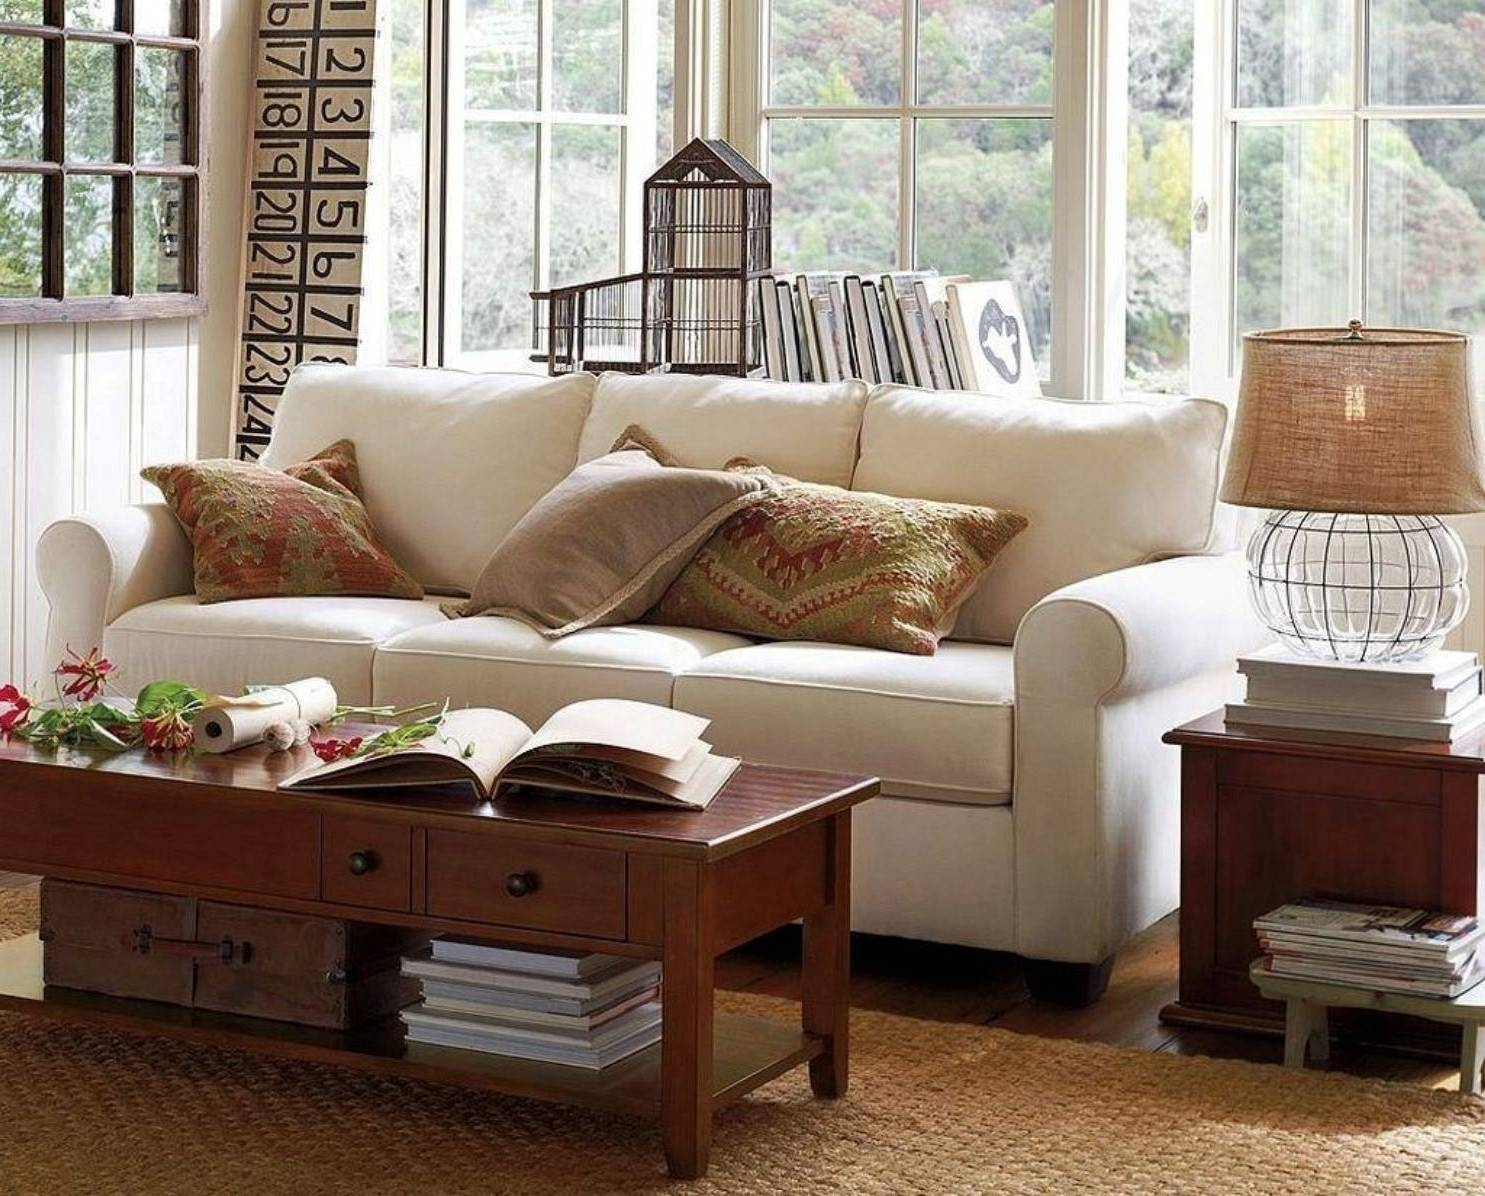 Pottery Barn Giant Sofa Bed | Bed Furniture Decoration In Antique Glass Pottery Barn Coffee Tables (View 20 of 30)